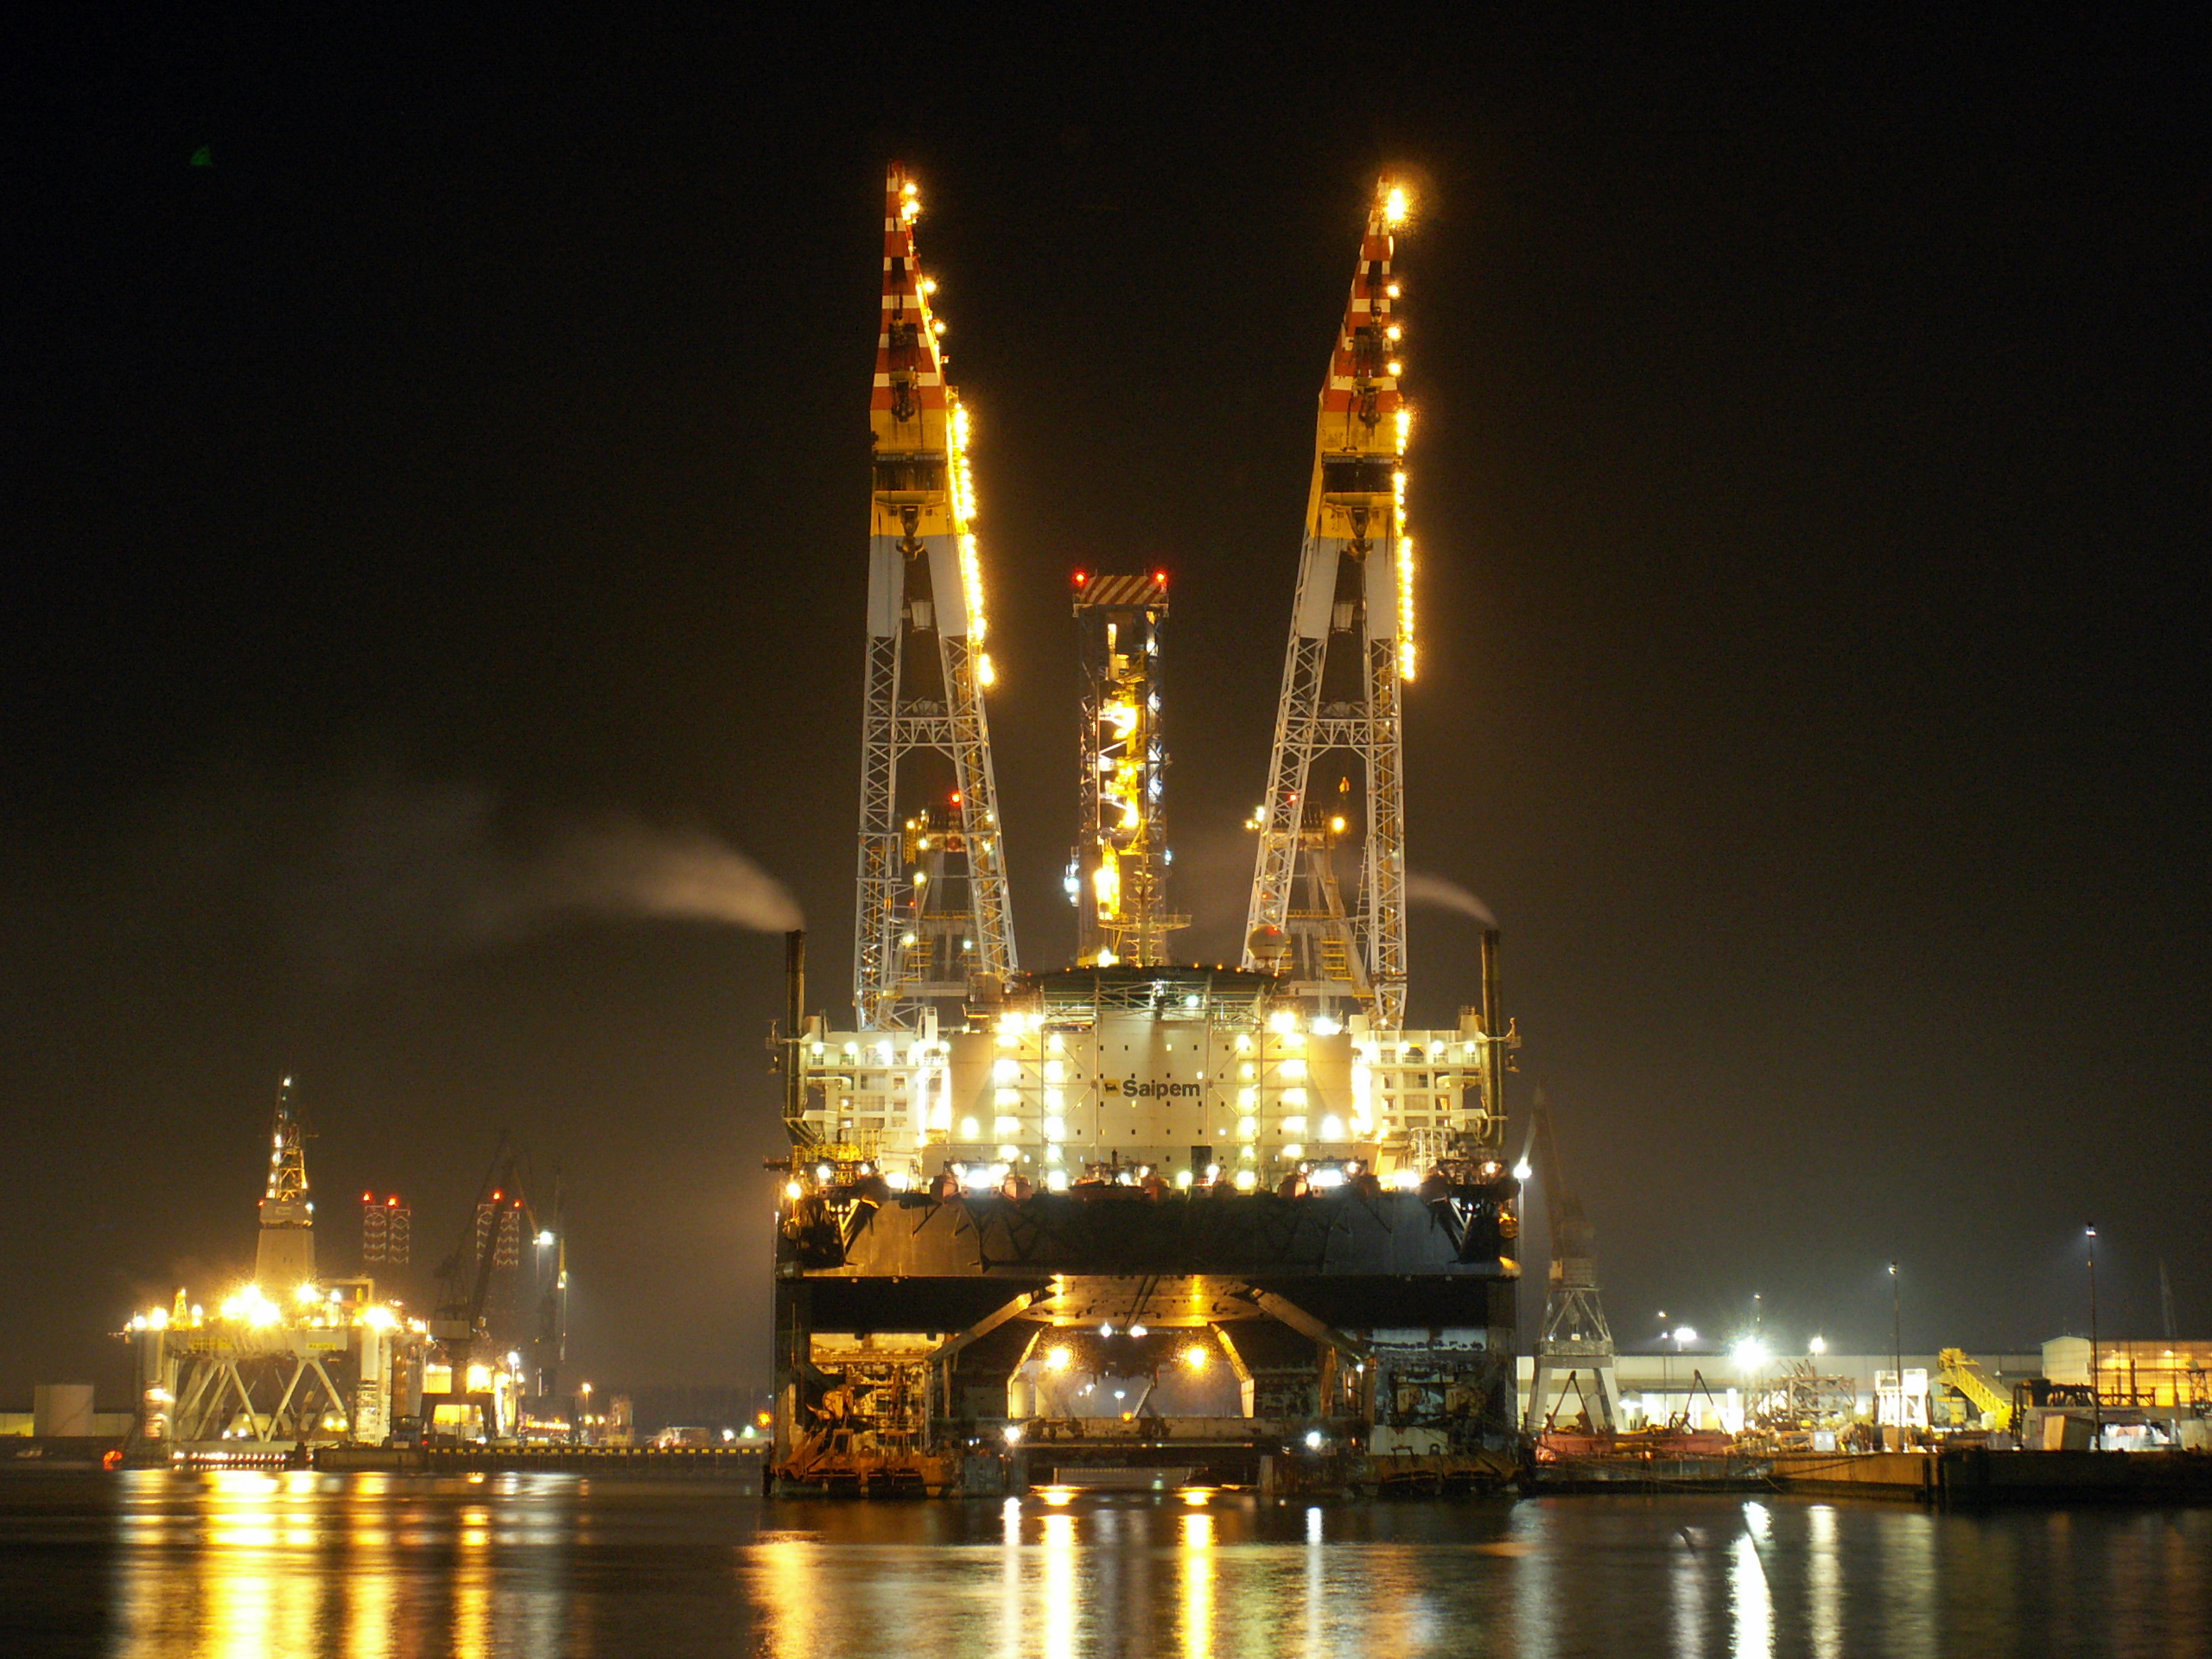 Saipem_7000_at_night_p2_24January2006